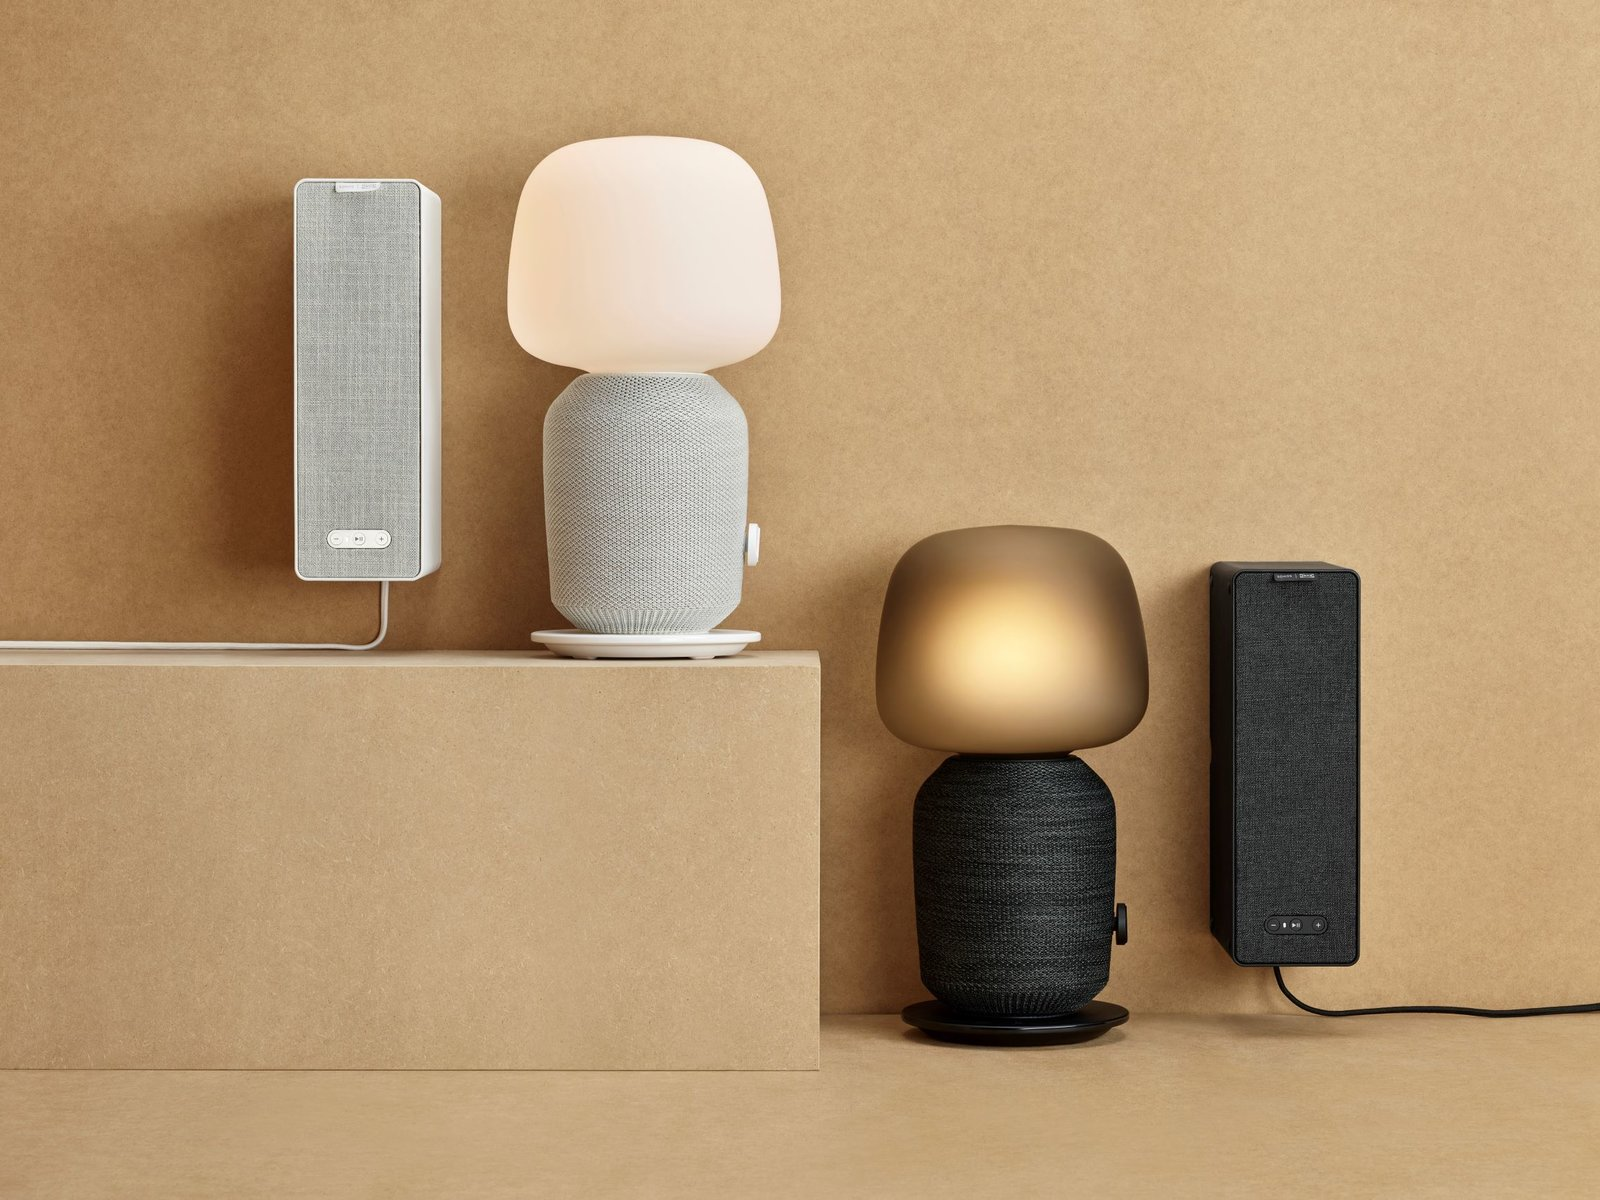 SYMFONISK WiFi speakers by IKEA and Sonos